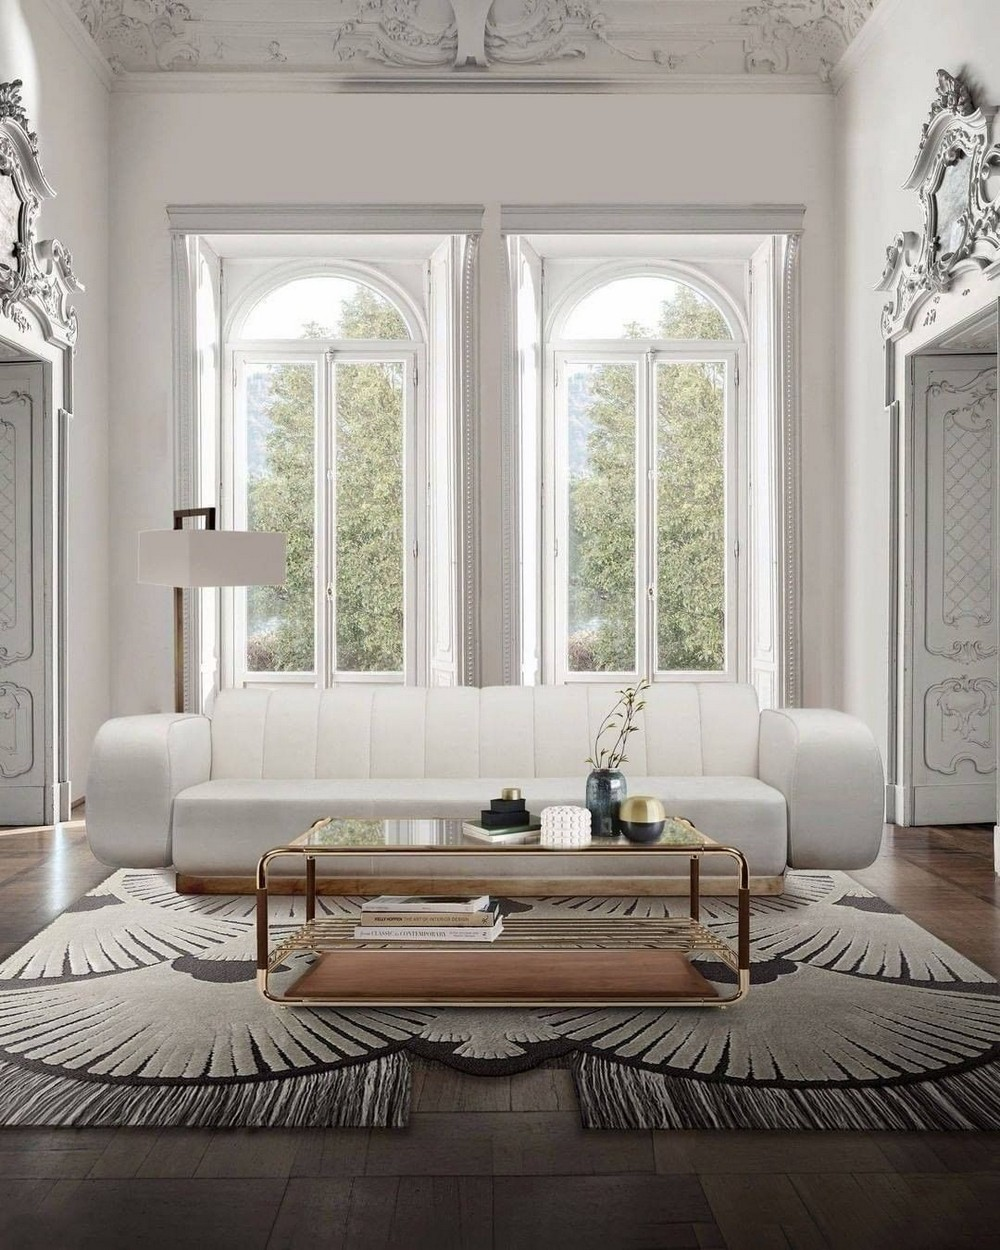 18 Living Room Ideas And Essentials - PART III